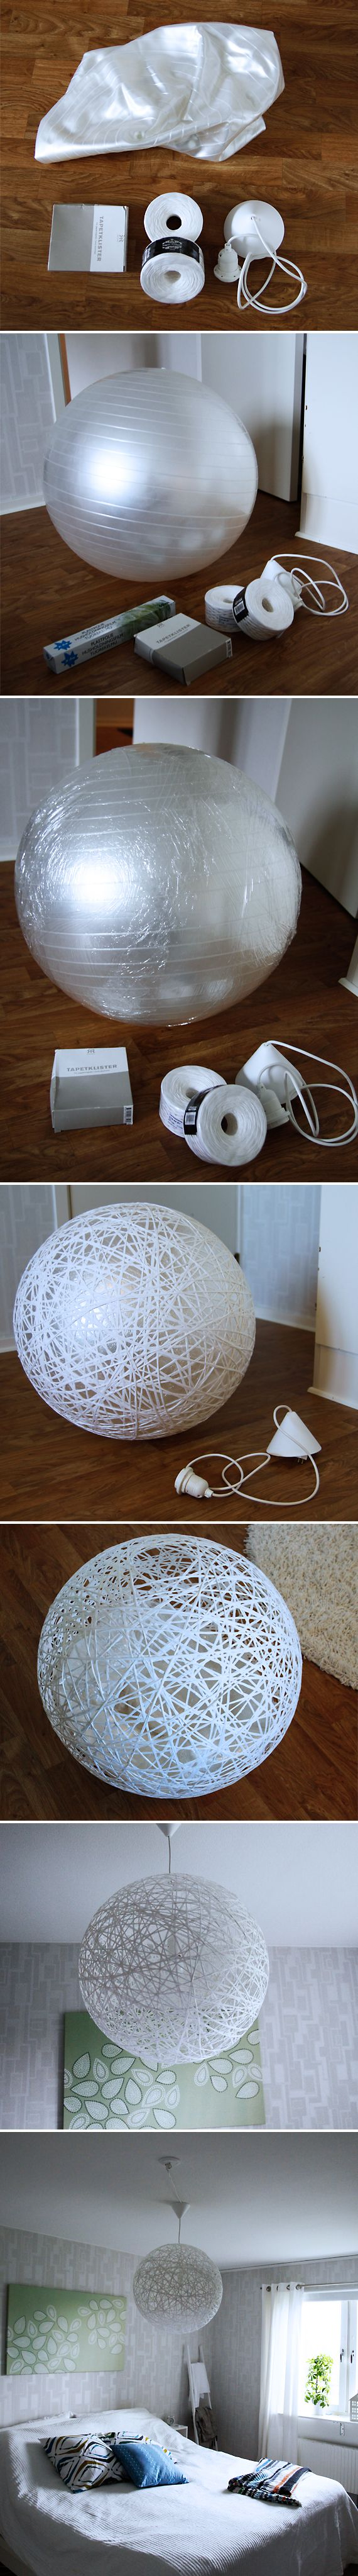 DIY string lamp